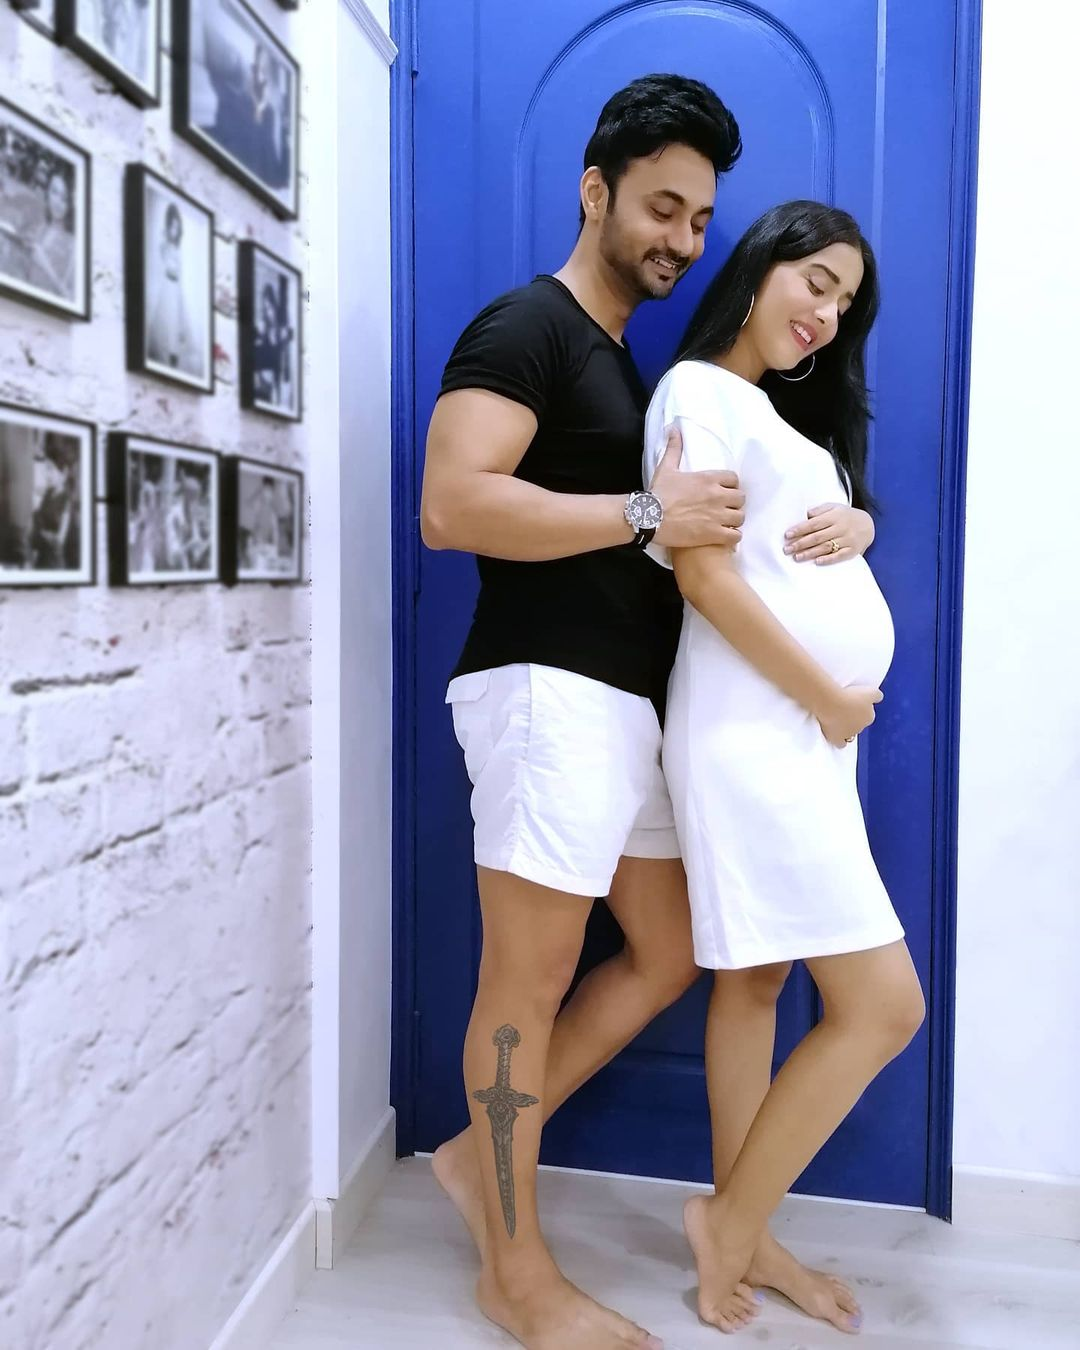 Actors Gossips: Amrita Rao shares FIRST photo flaunting her baby bump; poses with hubby RJ Anmol